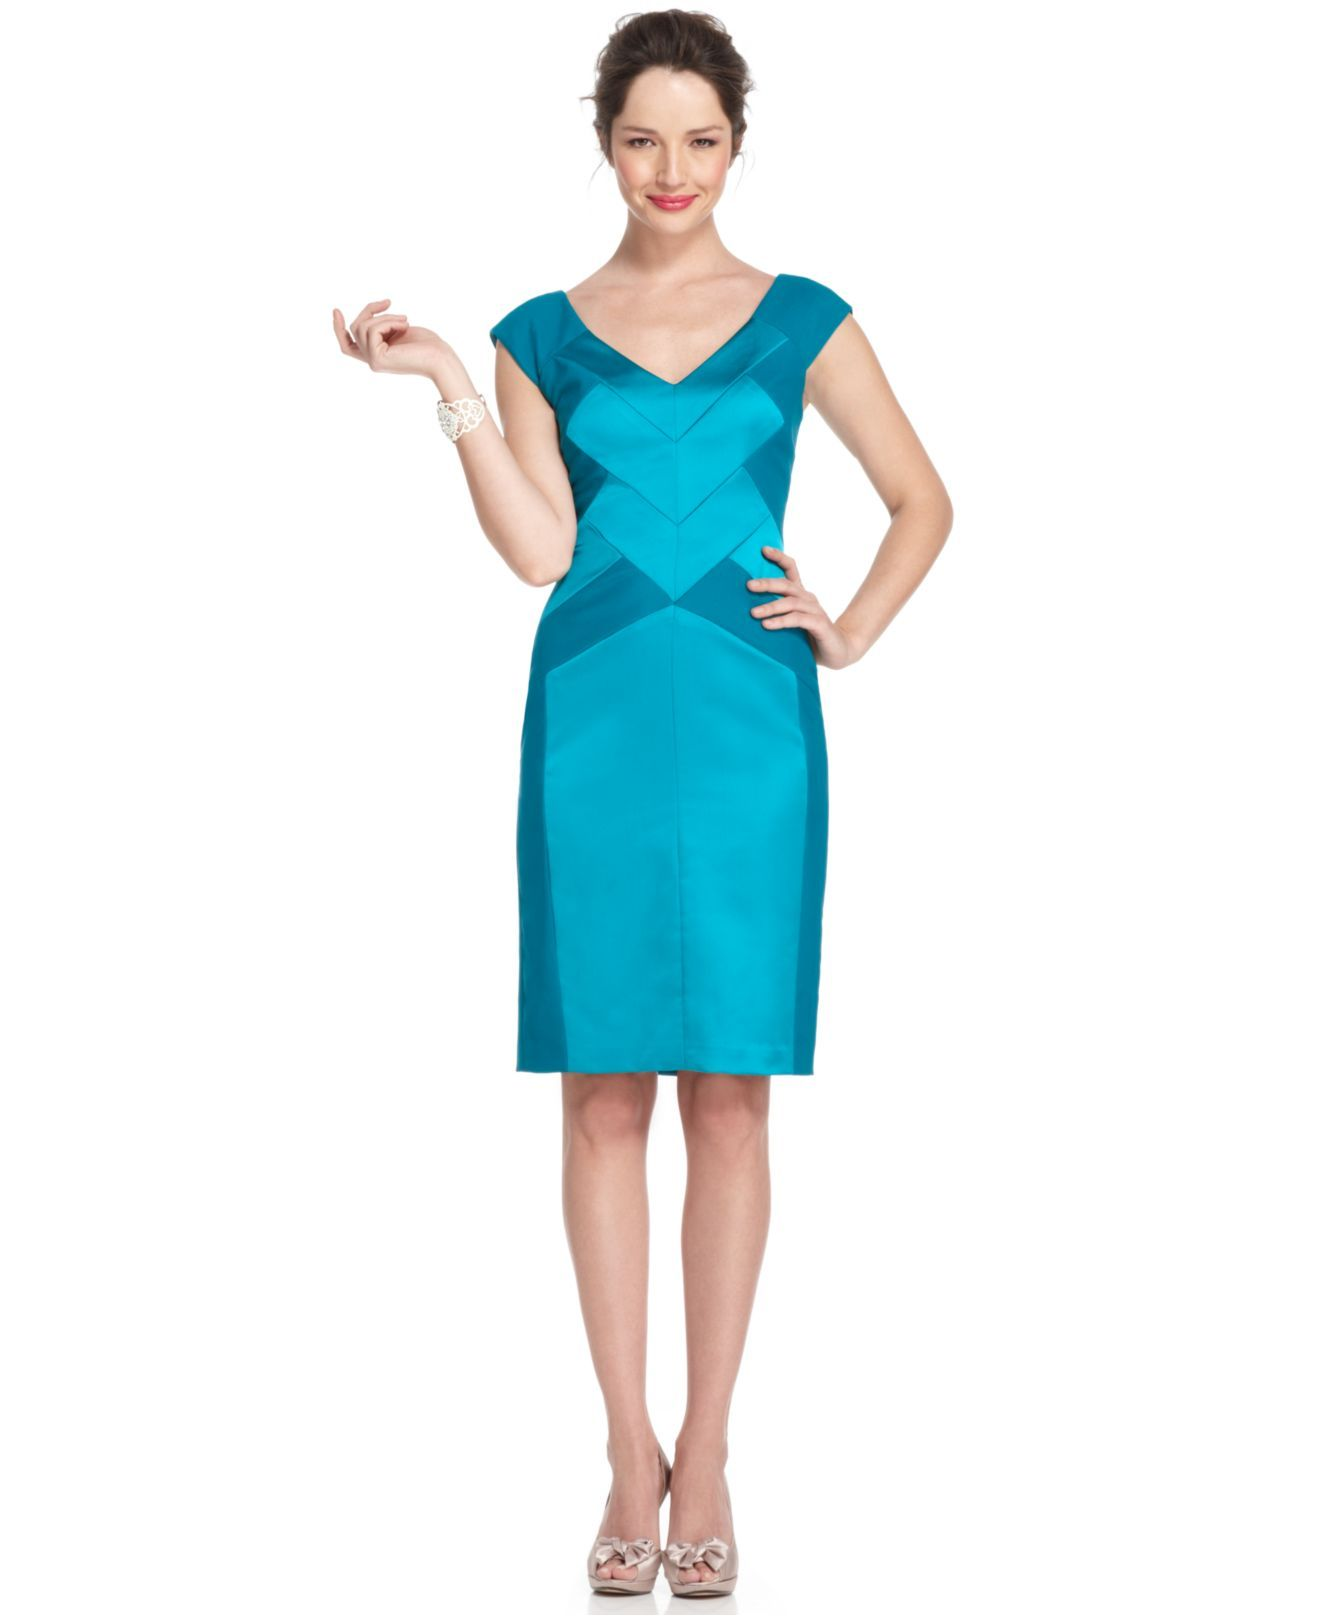 Maggy London Dress, Sleeveless Seamed V-Neck Sheath - Womens Mother of the Bride Dresses - Macy's